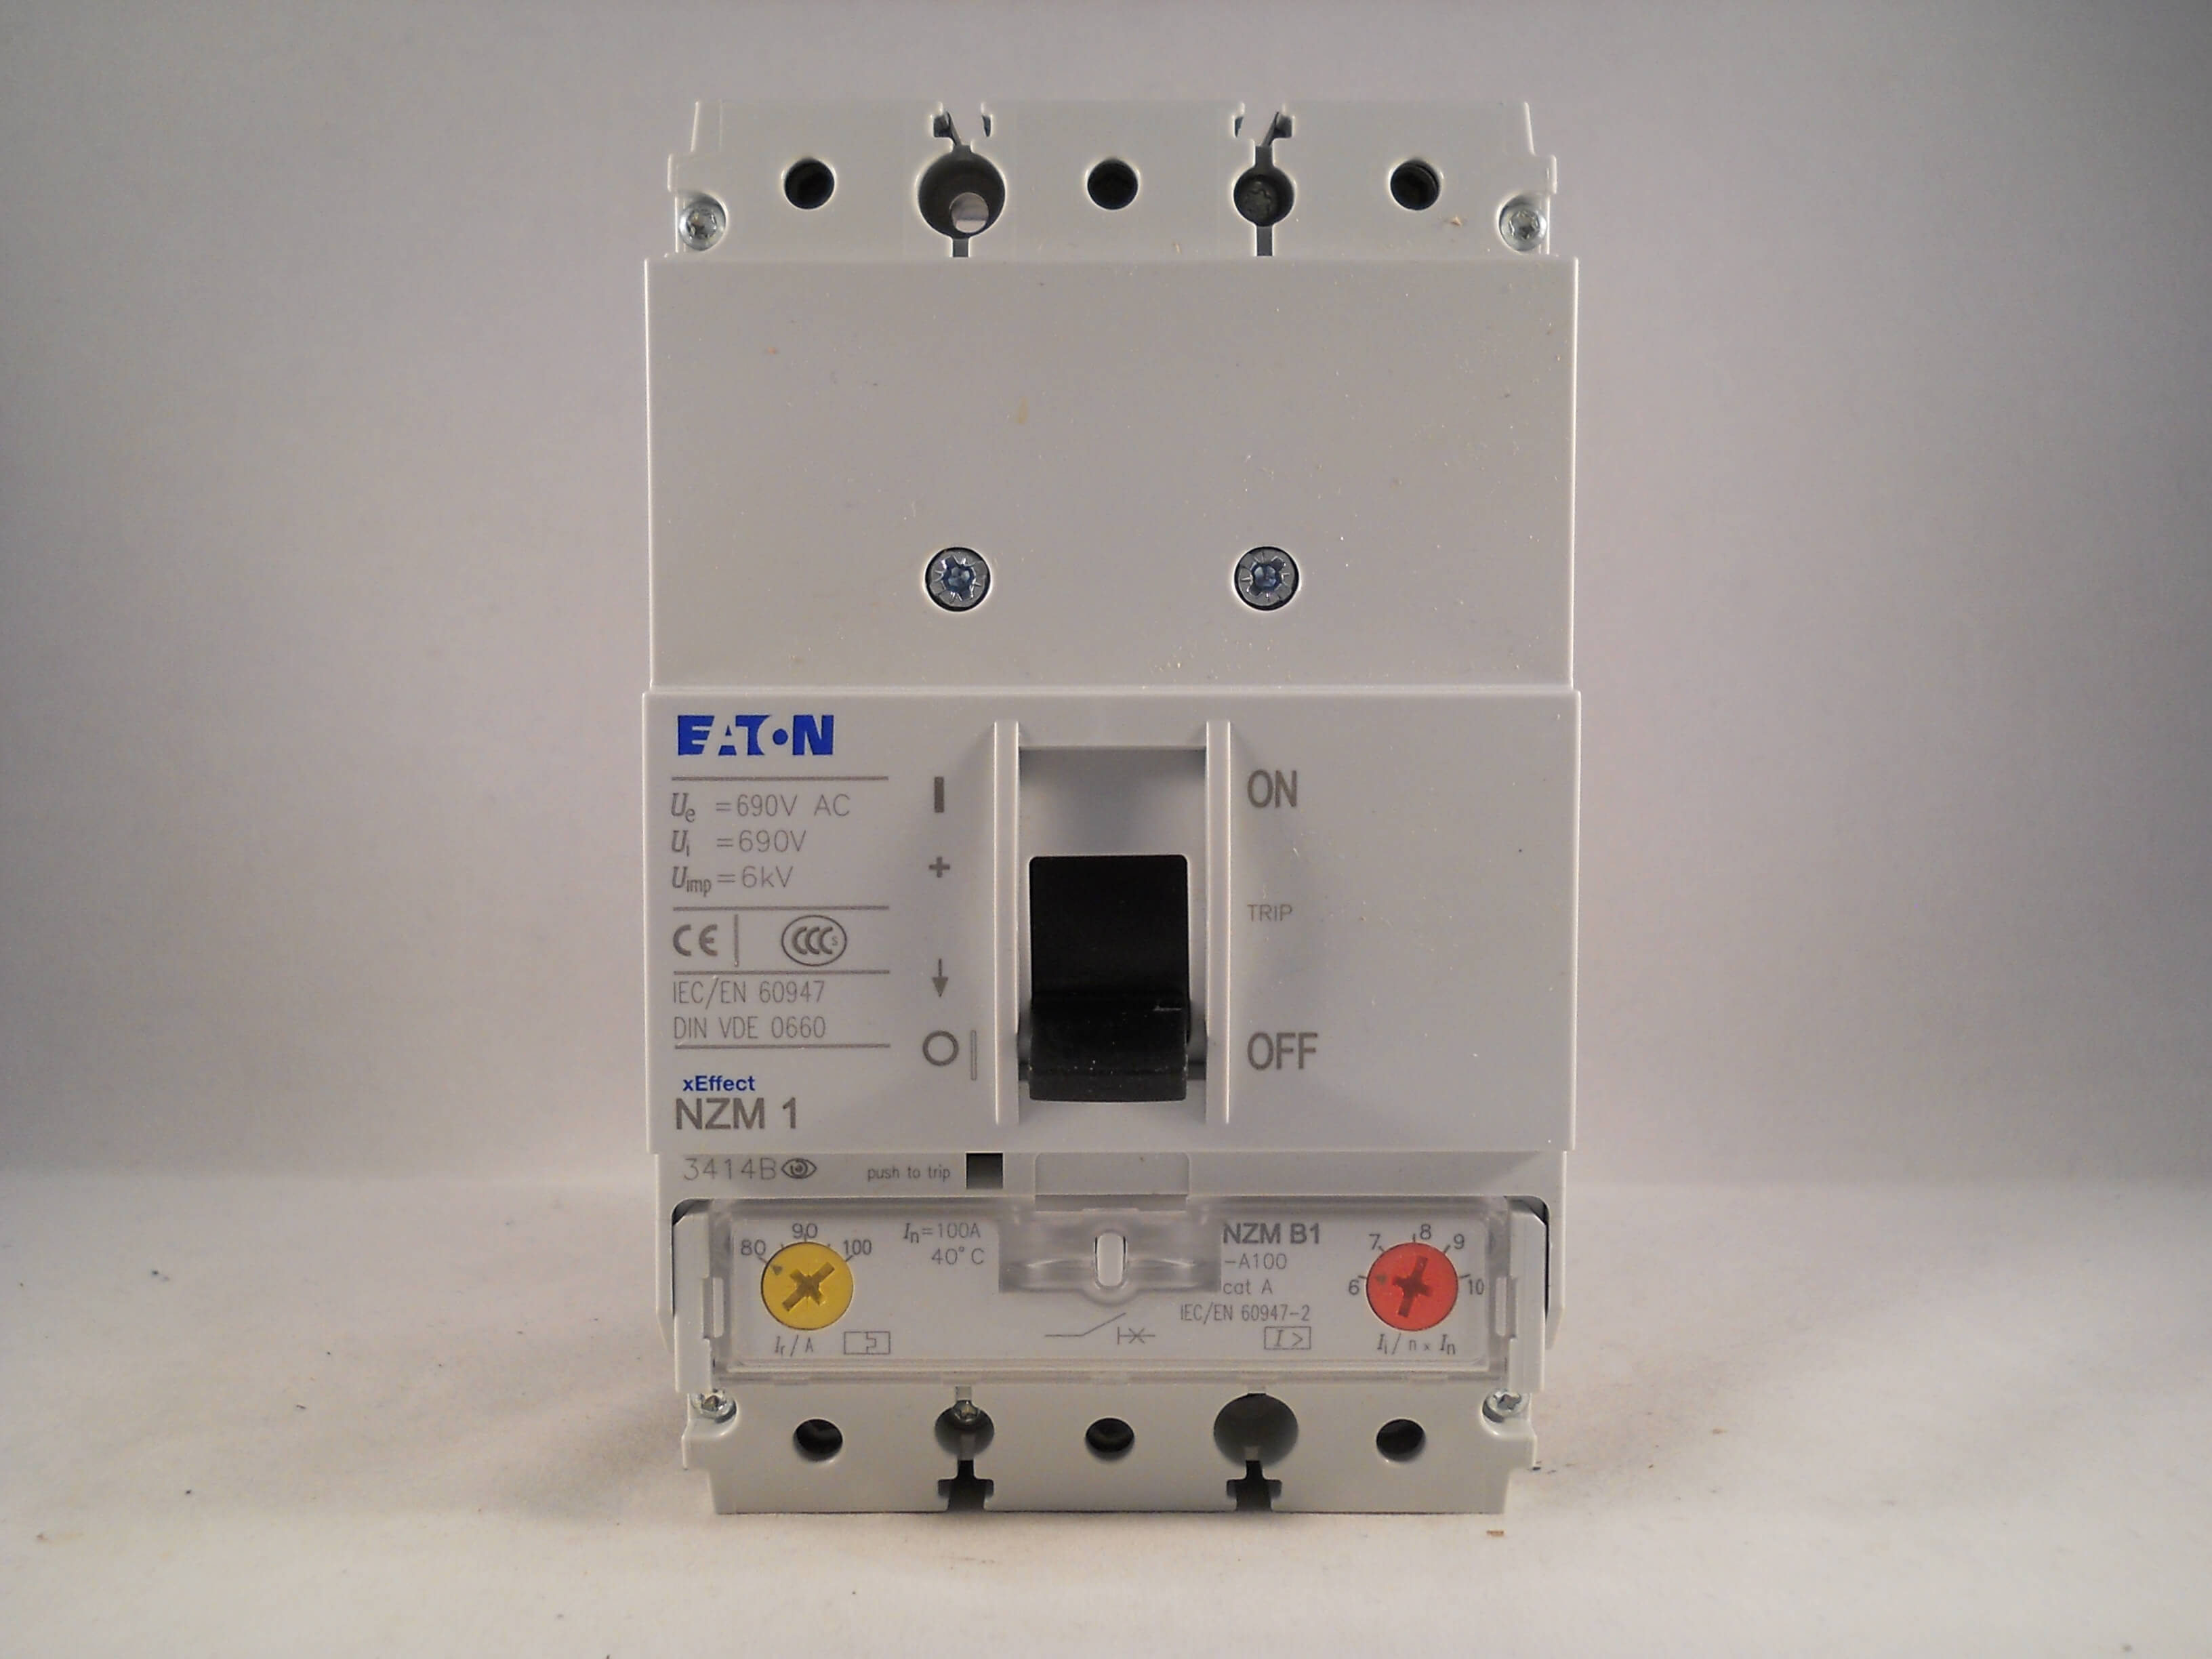 NZMB1A100BOXED-4  Phase Electrical Panel on electric power transmission, high leg delta, electric motor, 3 phase electric meter, rotary phase converter, 3 phase air conditioning, earthing system, electrical substation, direct current, 3 phase electricity, 3 phase high leg, 3 phase troubleshooting, short circuit, electricity meter, power factor, electric power, 3 phase voltage, 3 phase heater, motor controller, electrical wiring, 3 phase panelboard, 2 phase electrical panel, 3 phase nec color code, for 3 phase surge protector panel, 3 phase meter panel combo, electrical engineering, 3 phase panel box, high voltage, 3 phase switchgear, 3 phase wiring, 3 phase power plug, siemens 3 phase panel, 100 amp 3 phase panel, ac power, 3 phase heating panel, alternating current, 3 phase panel schedule,